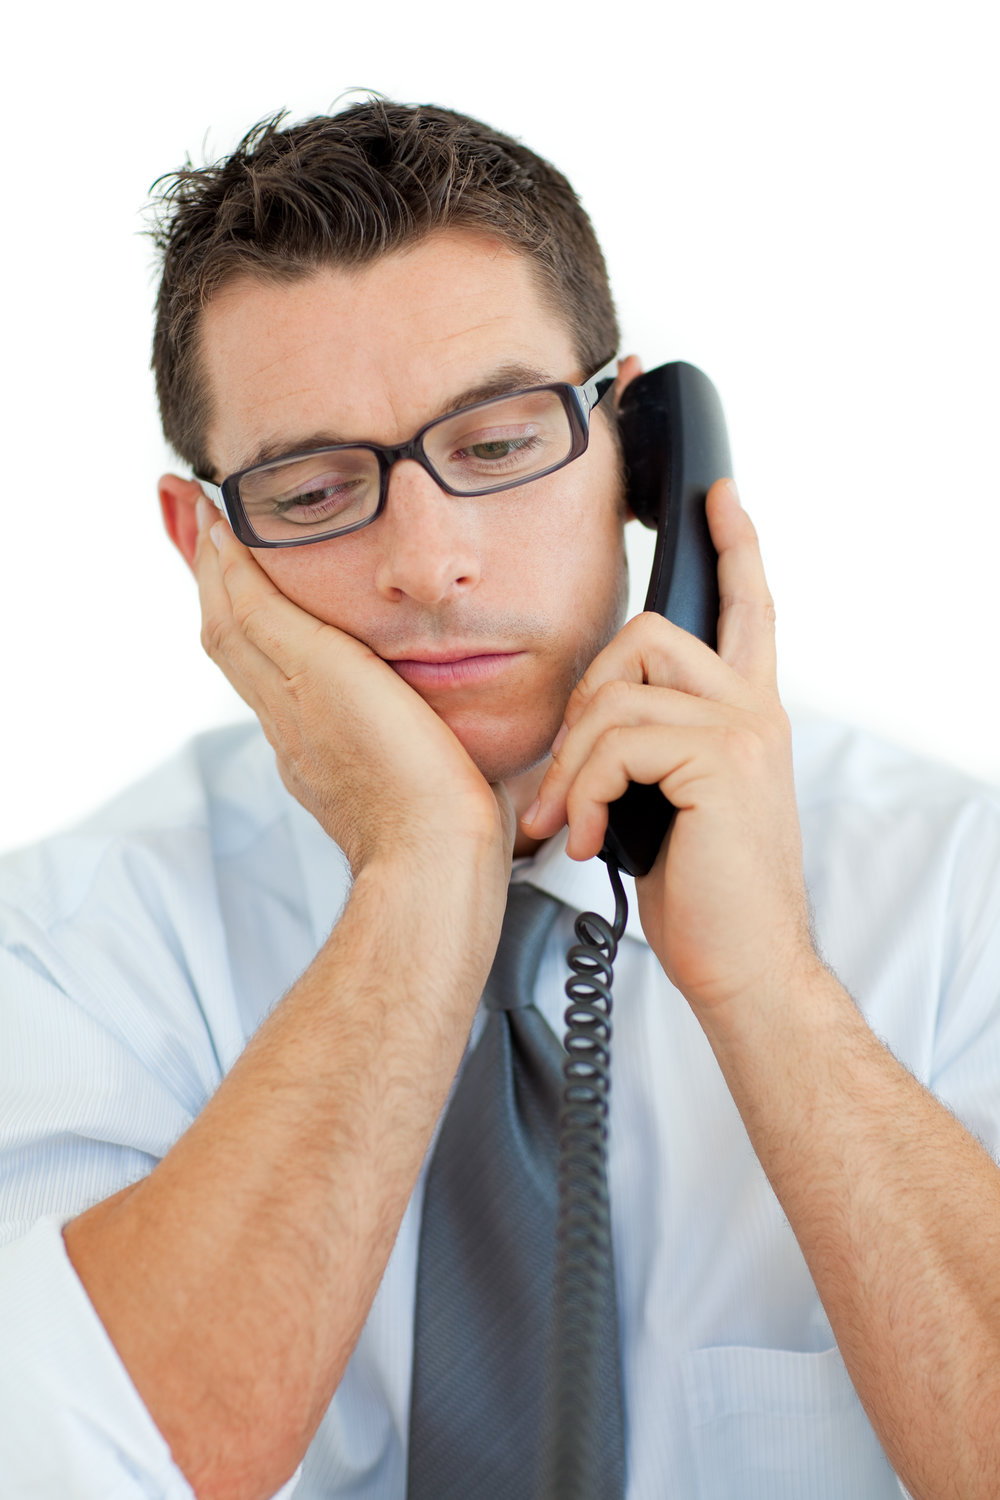 Put your callers on hold without putting them to sleep.